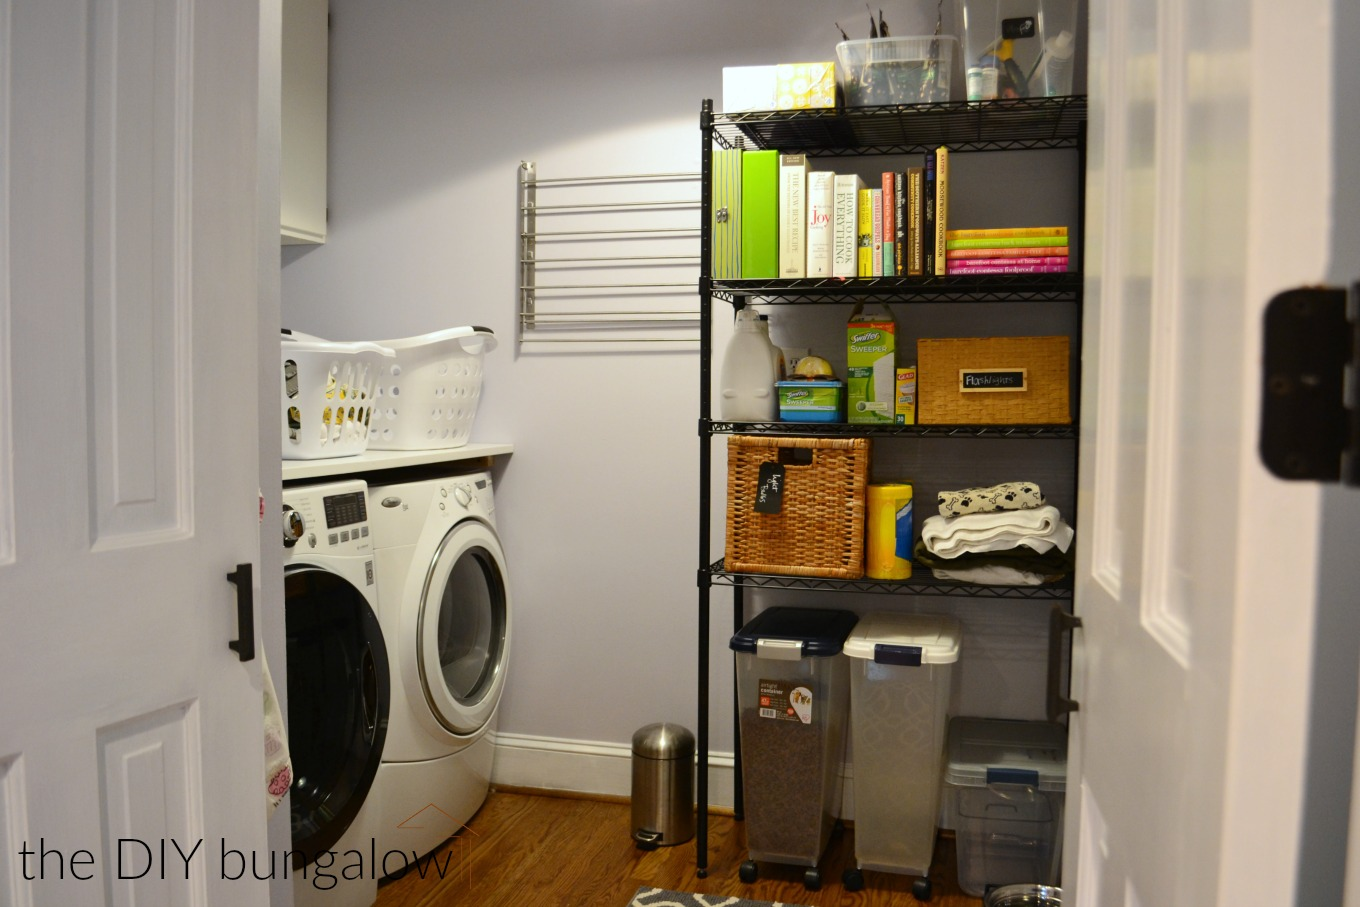 Laundry room reveal with storage and color - thediybungalow.com